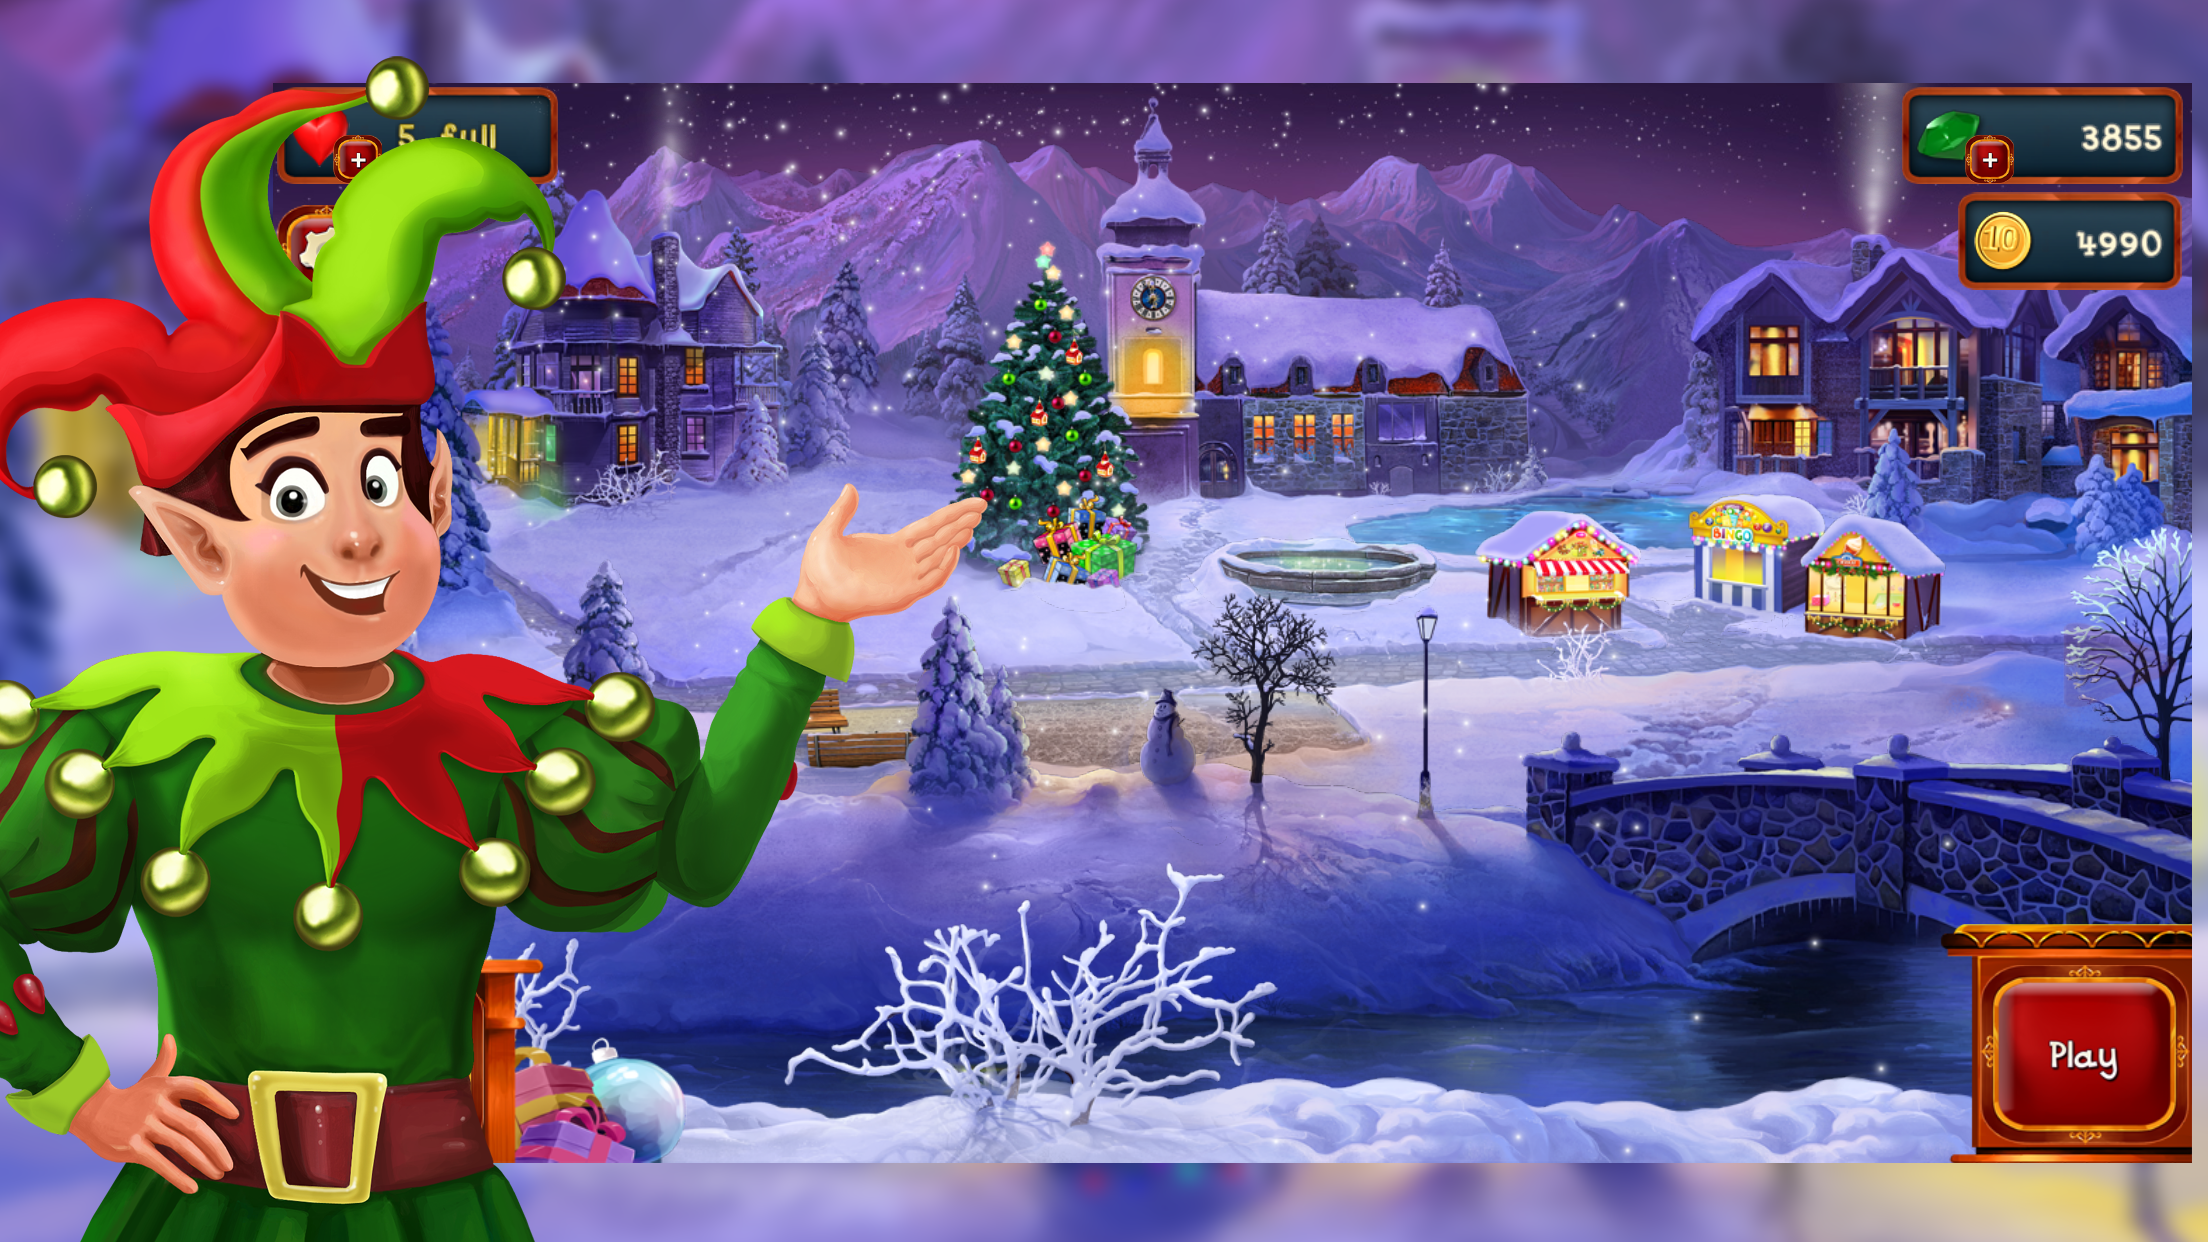 Free Christmas puzzle game for the whole family Image